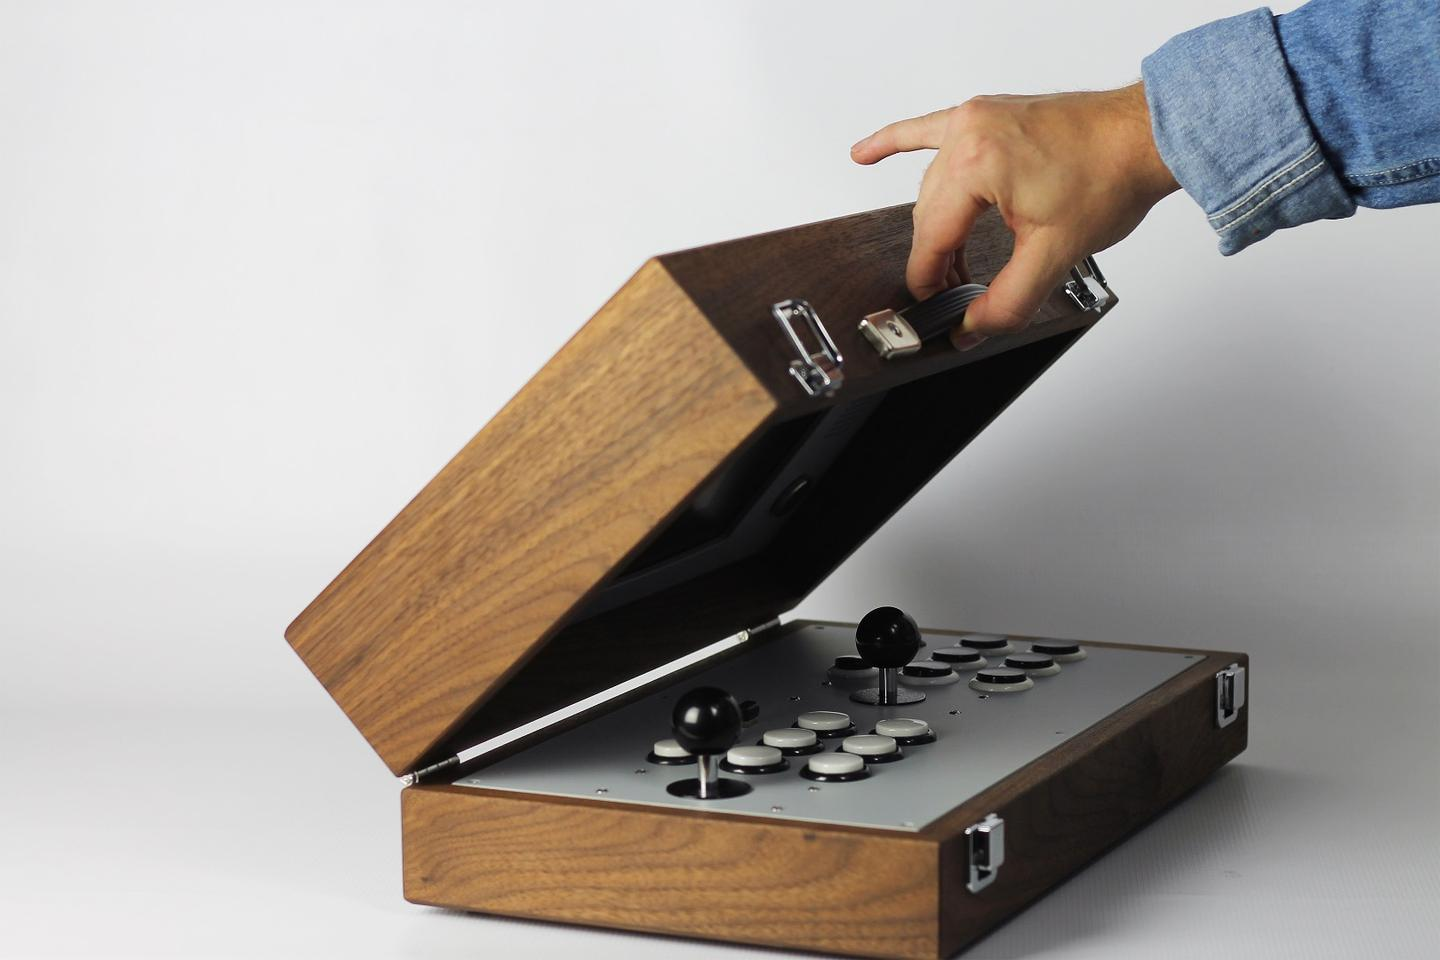 The Cary42: A two-player game console in a handmade wood case that comes with 100 games pre-installed, but can be loaded with up to 10,000 emulated games